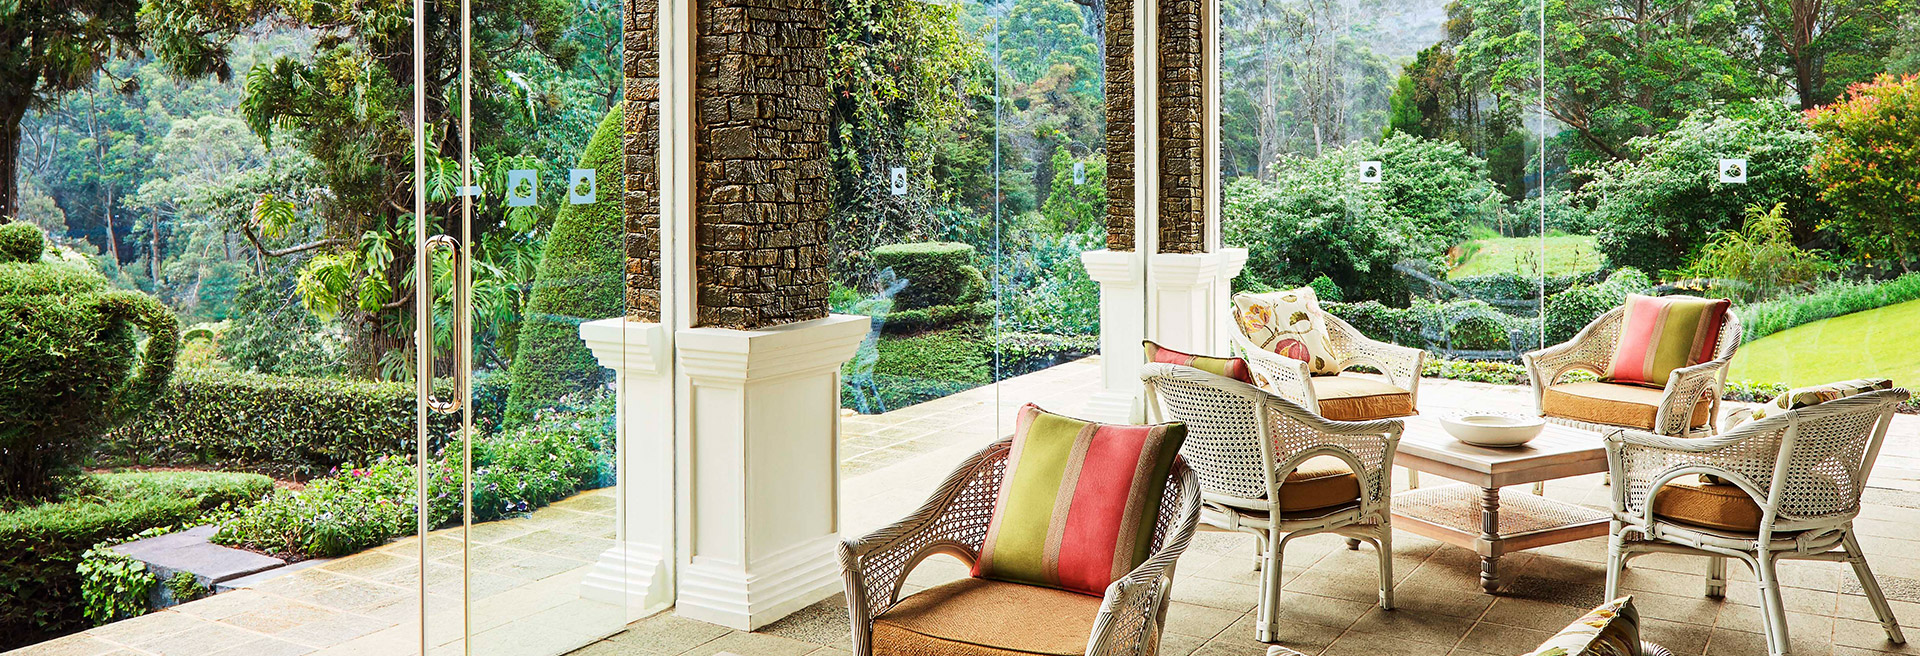 The Tea Terrace at Jetwing St. Andrew's